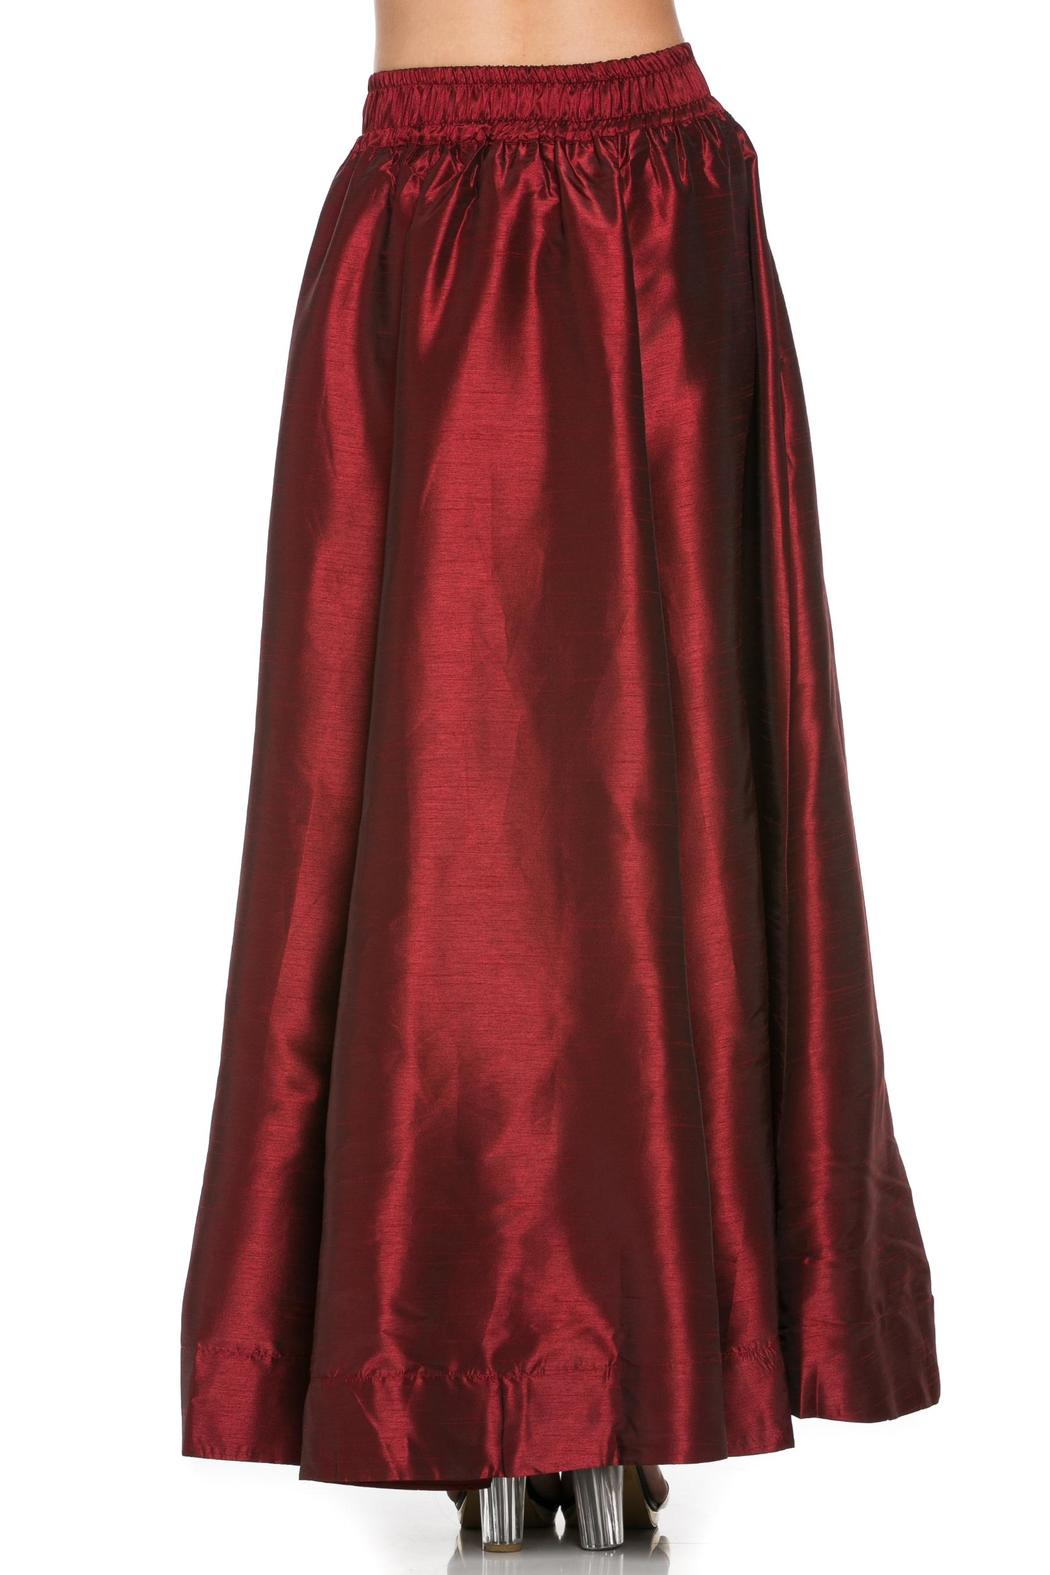 MHGS Wine Holiday Maxi - Back Cropped Image